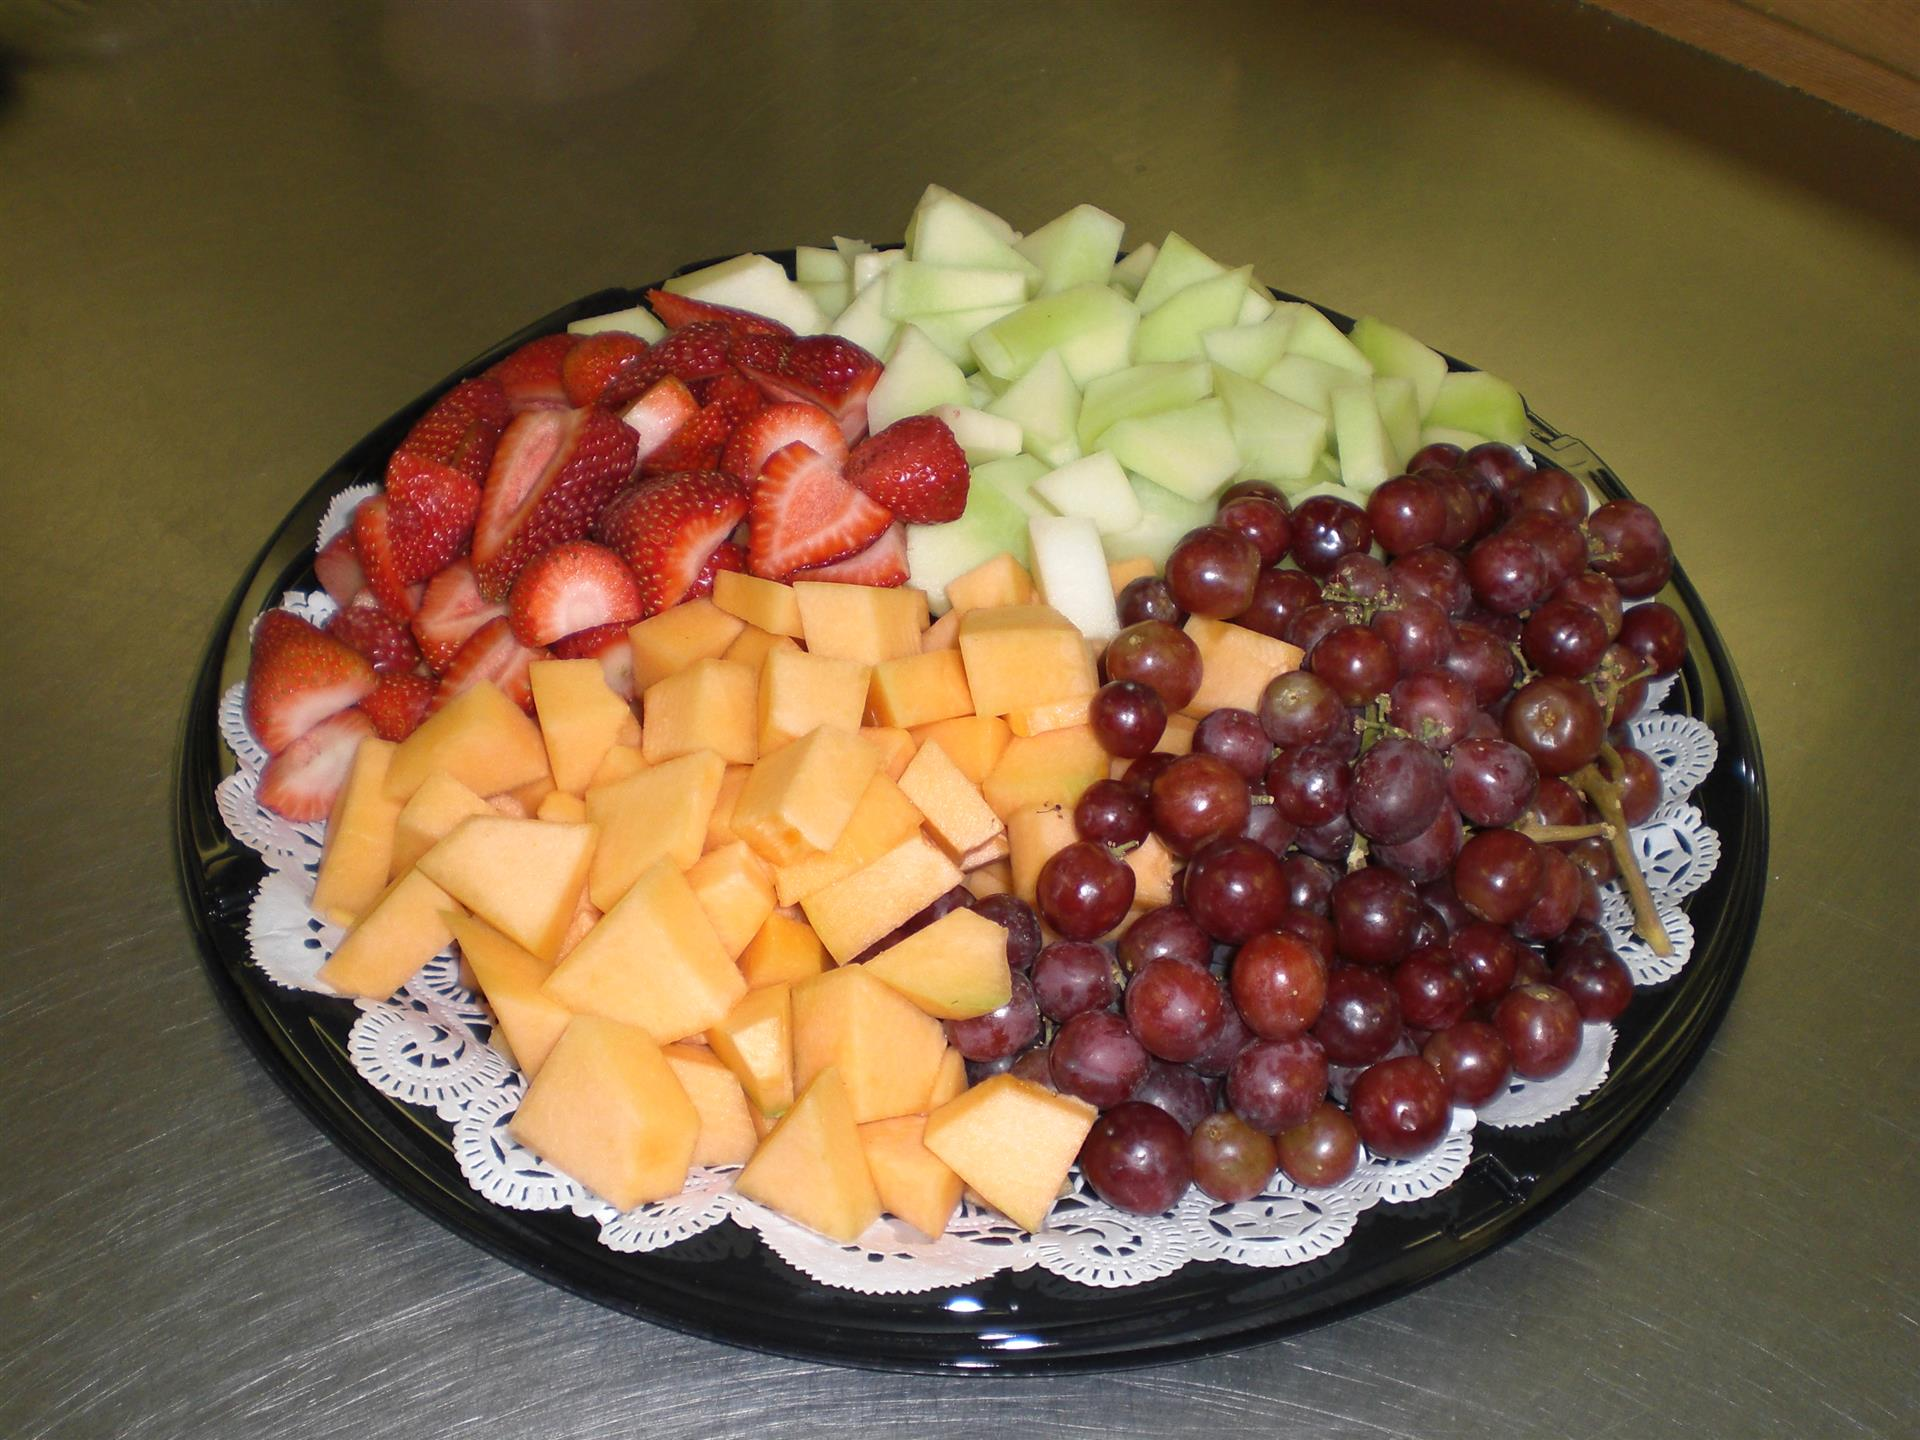 Fruit platter with canteloupe, red grapes, strawberries and honey dew